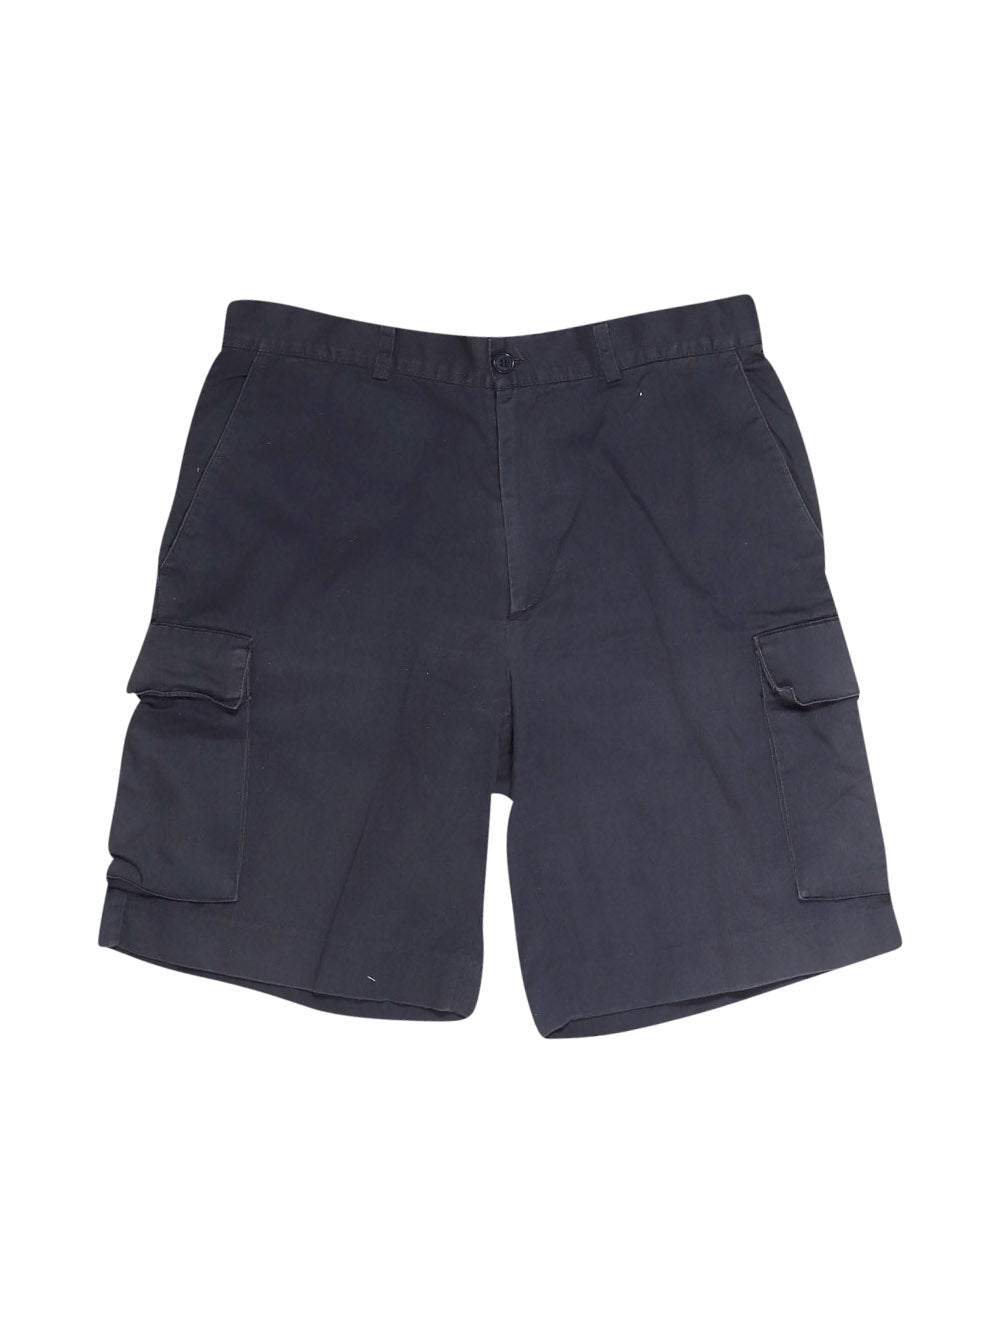 Front photo of Preloved Salvatore Ferragamo Blue Man's shorts - size 38/M